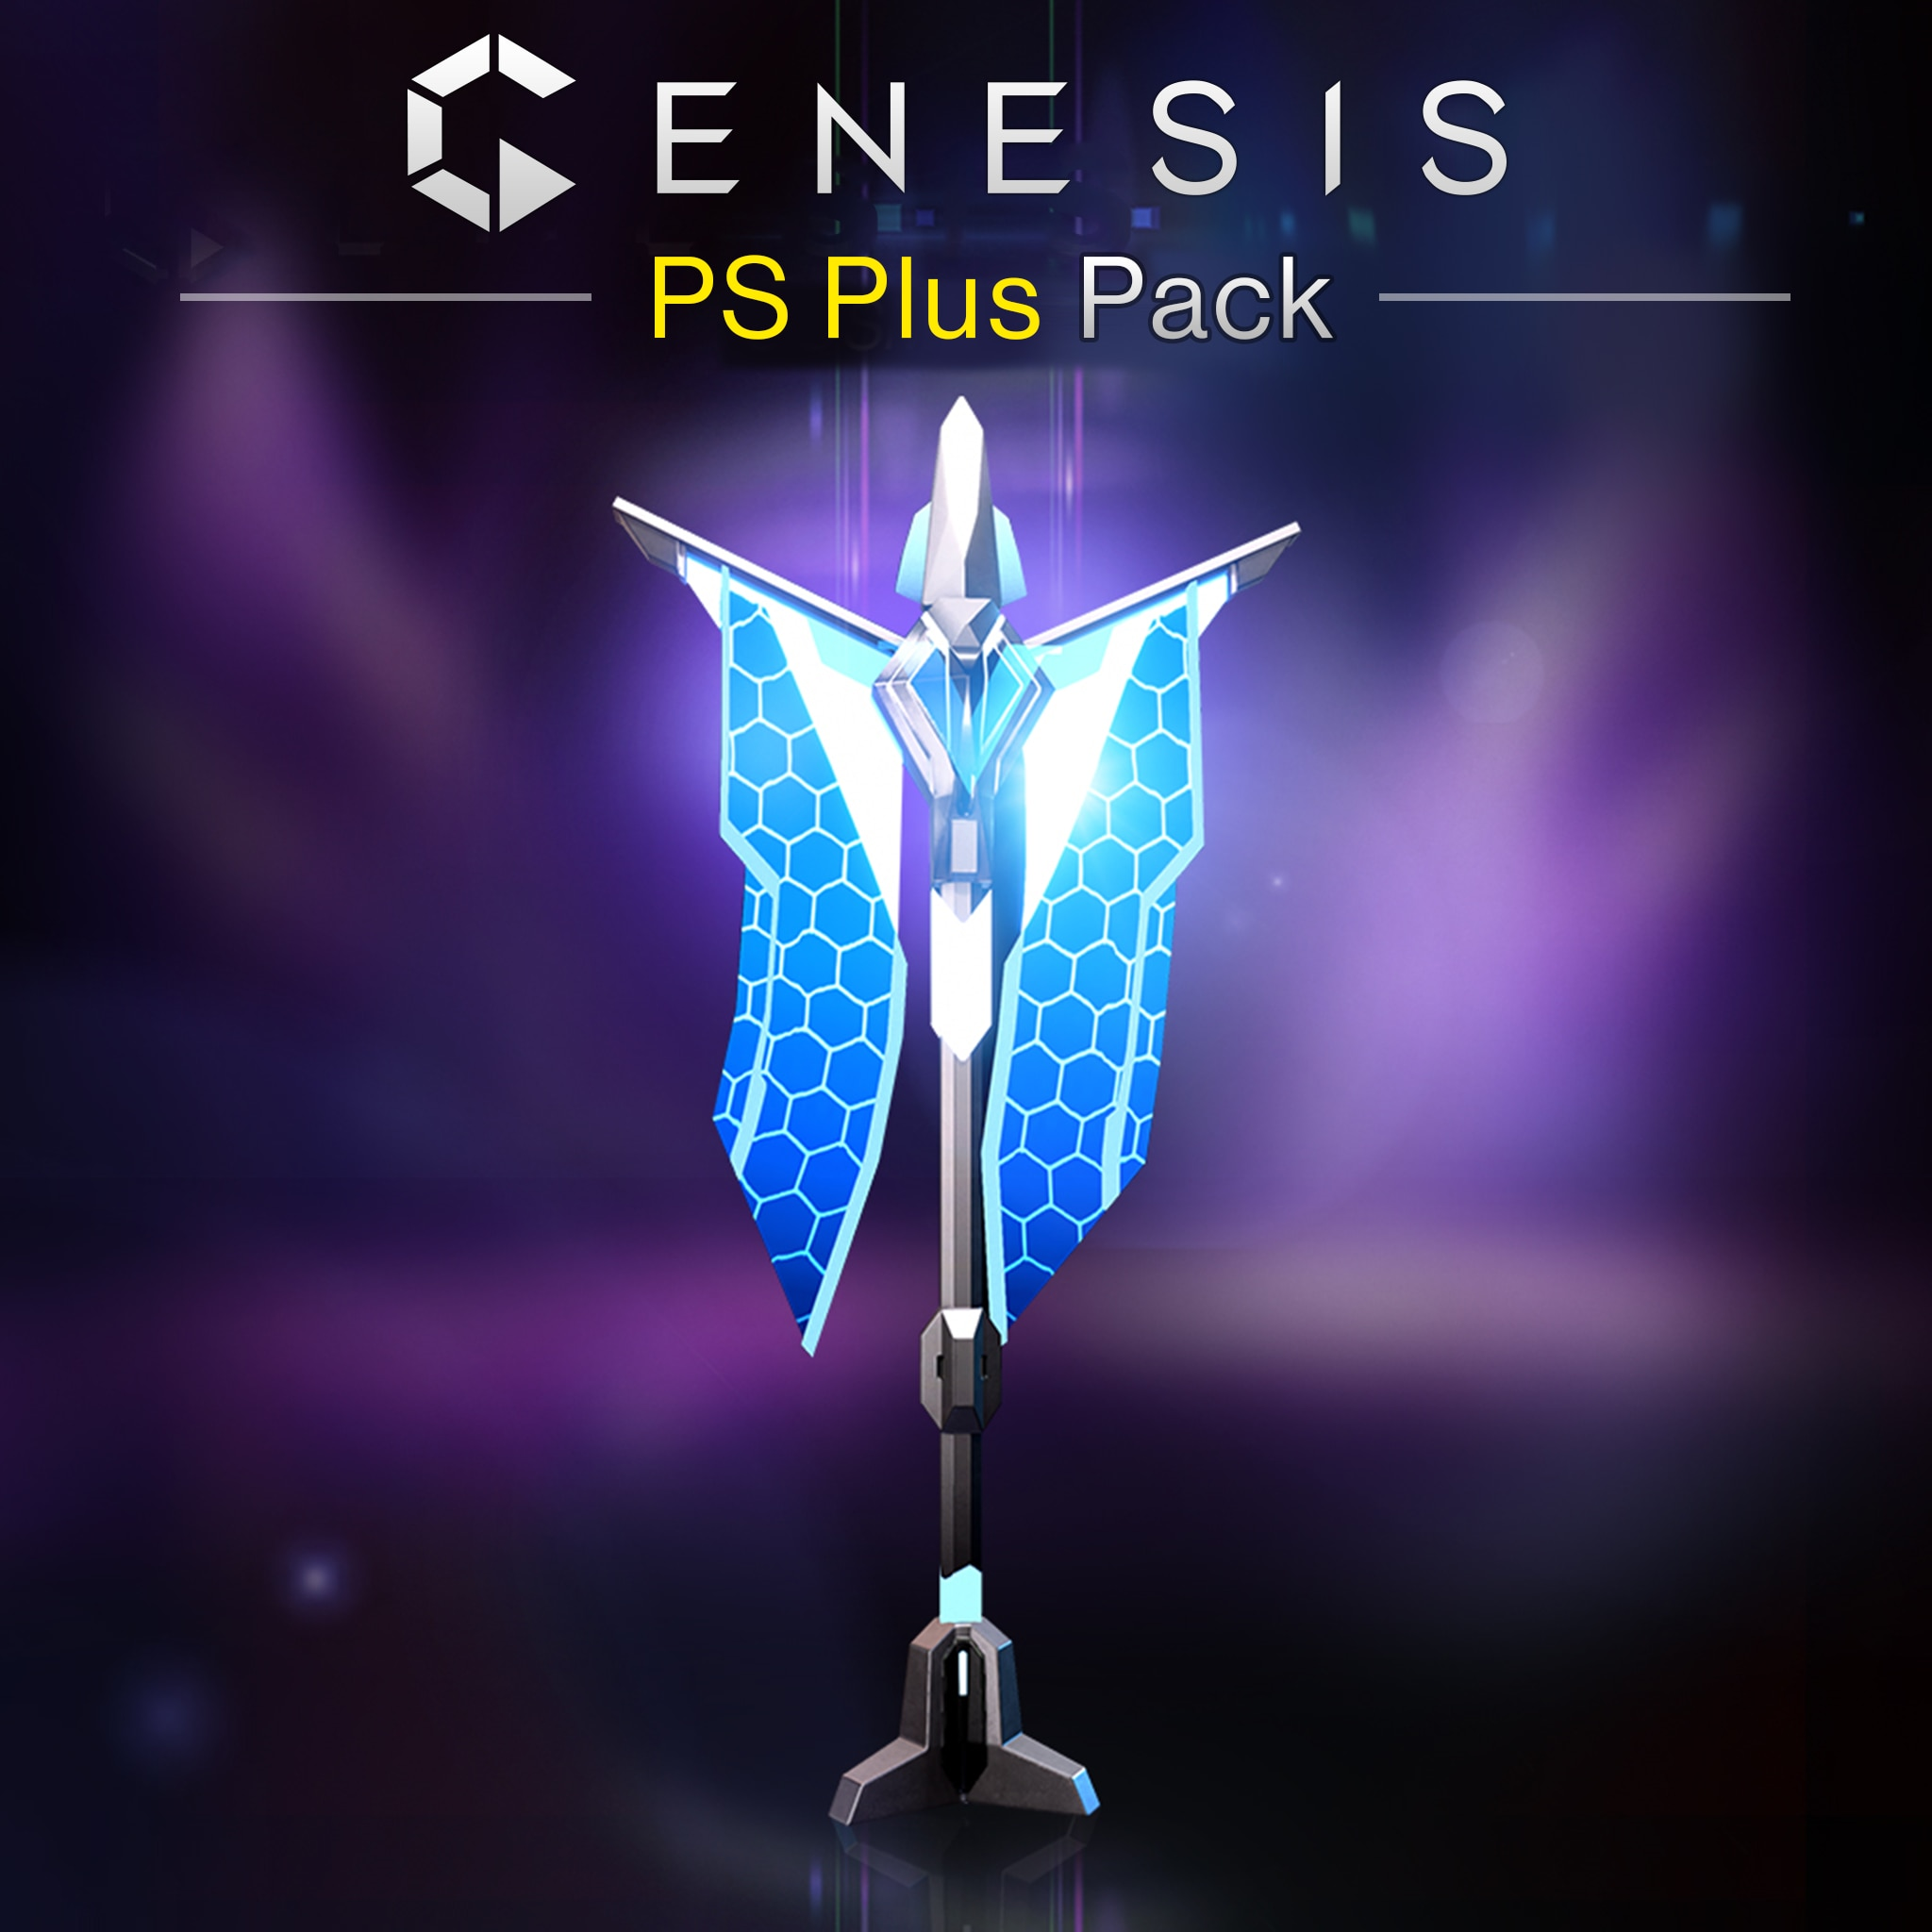 Genesis PS Plus Pack